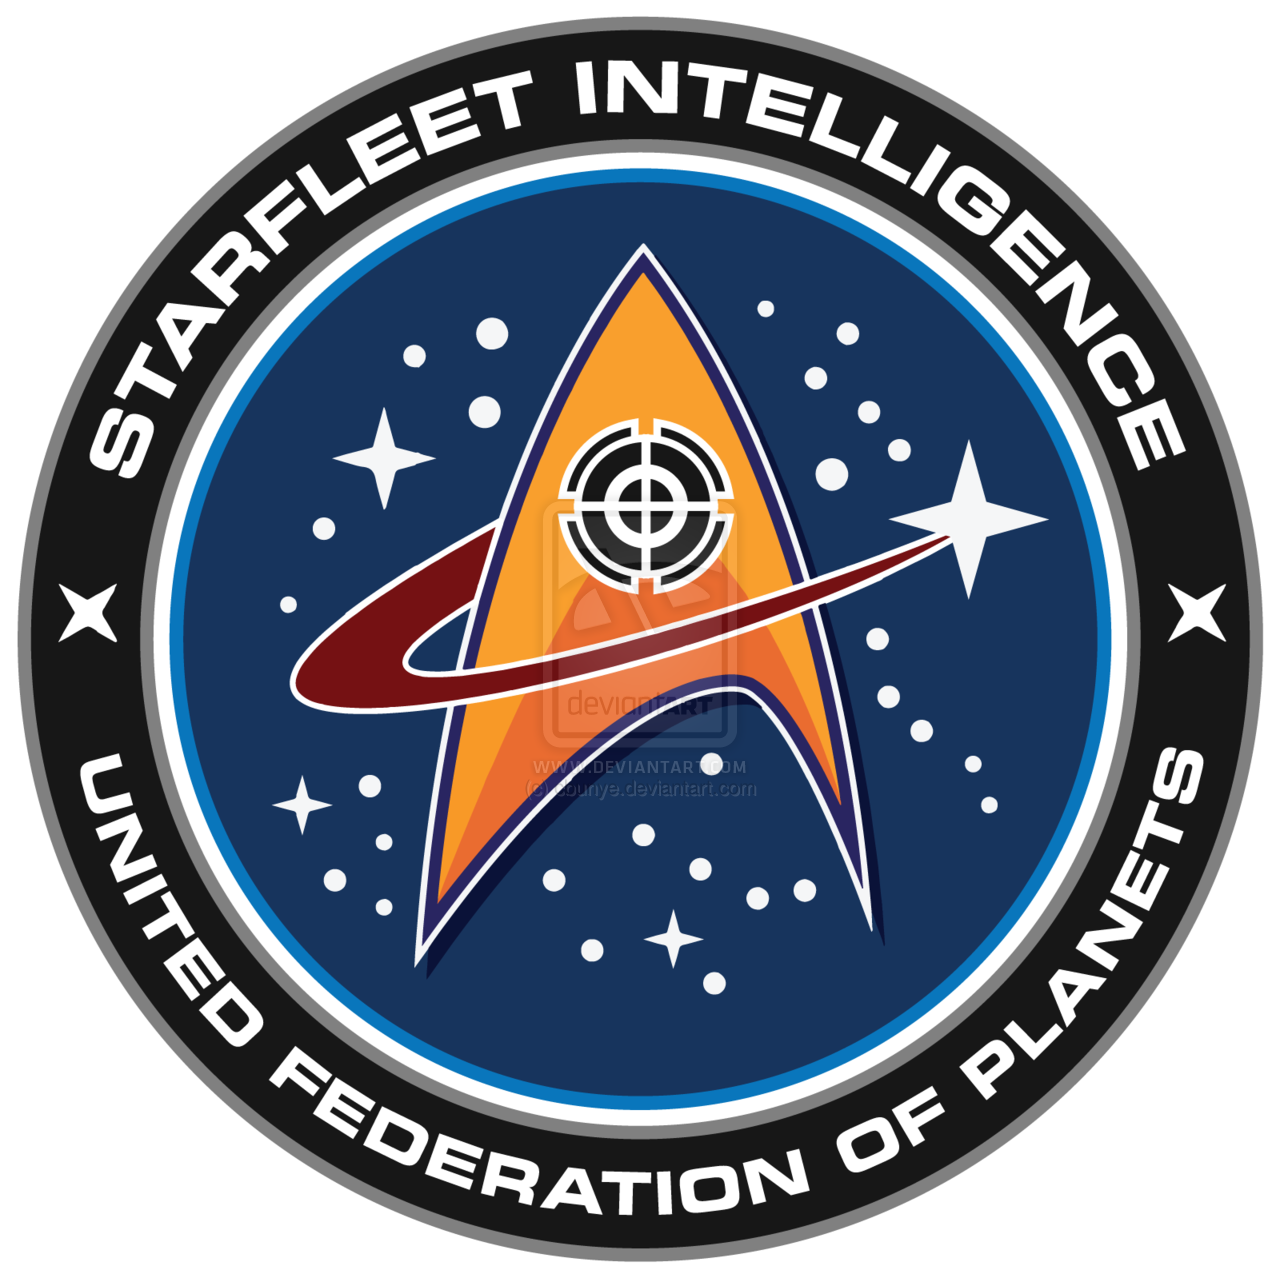 star trek logos and insignias Yahoo Image Search Results